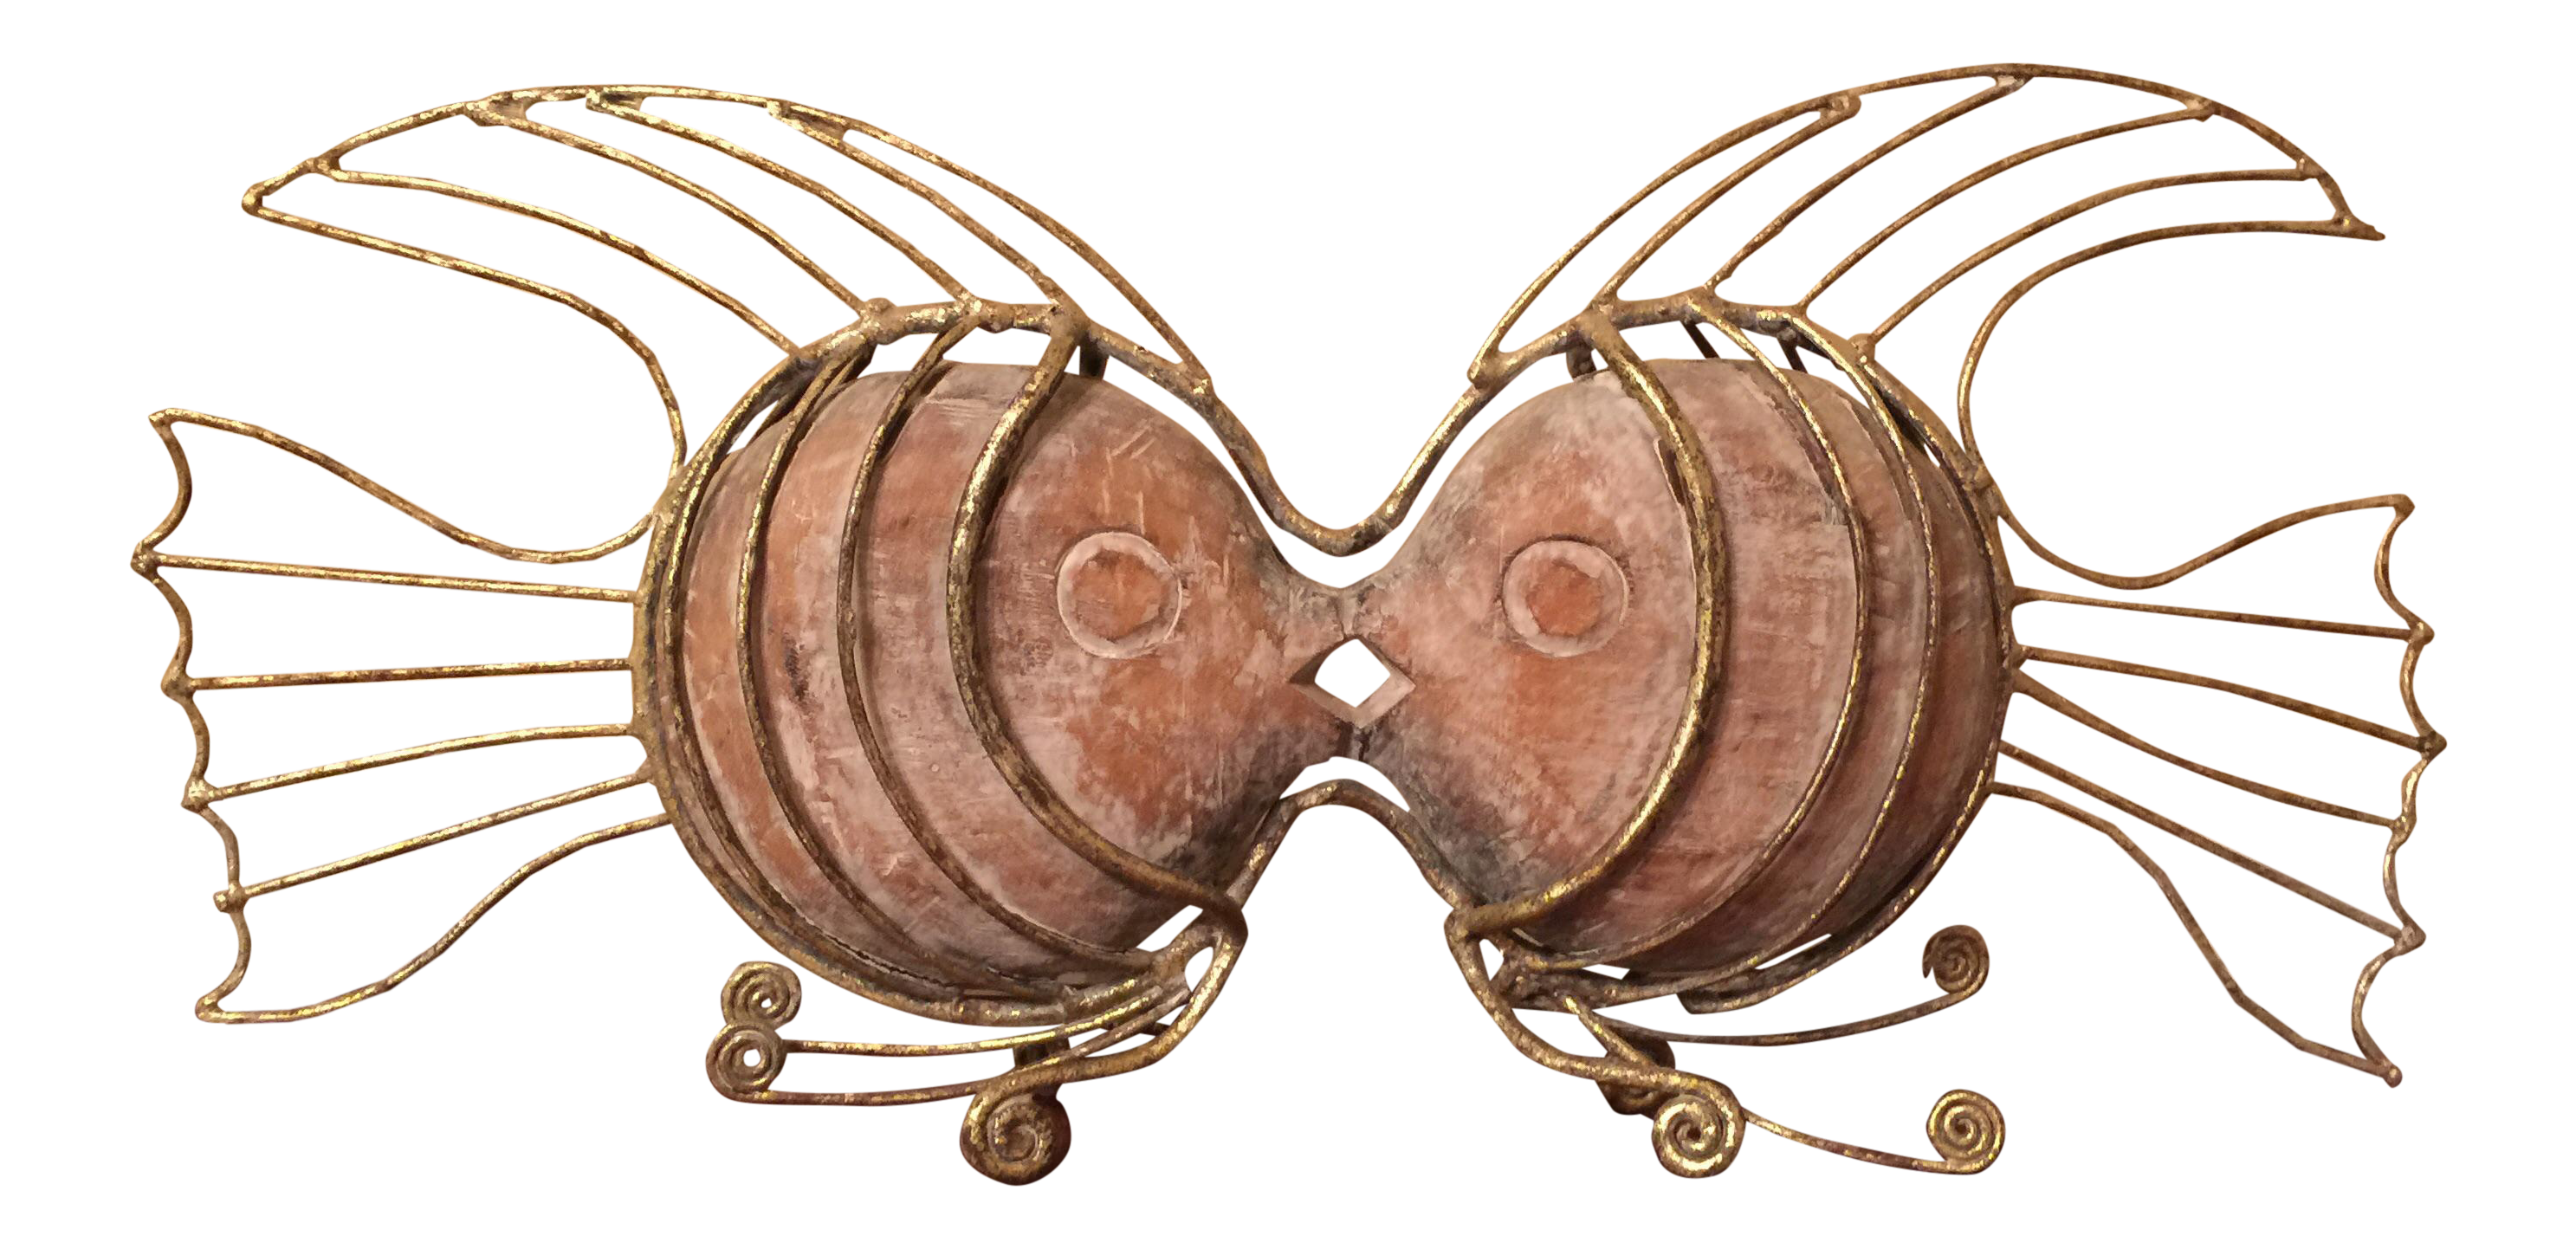 Two fish kissing clipart image freeuse Gilded Metal & Carved Wood Kissing Fish Sculpture   Chairish image freeuse